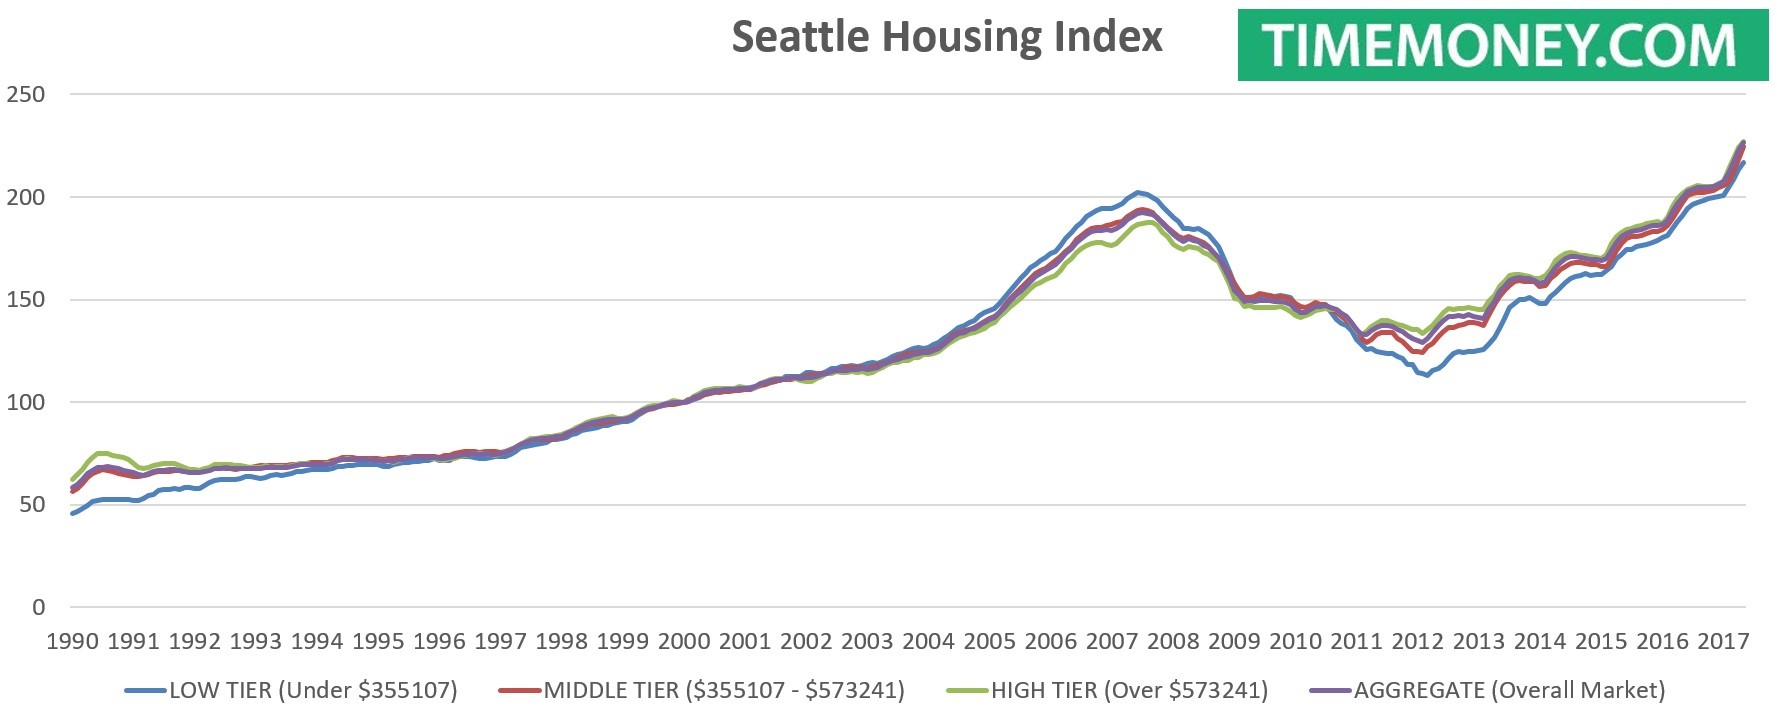 Seattle housing heating up